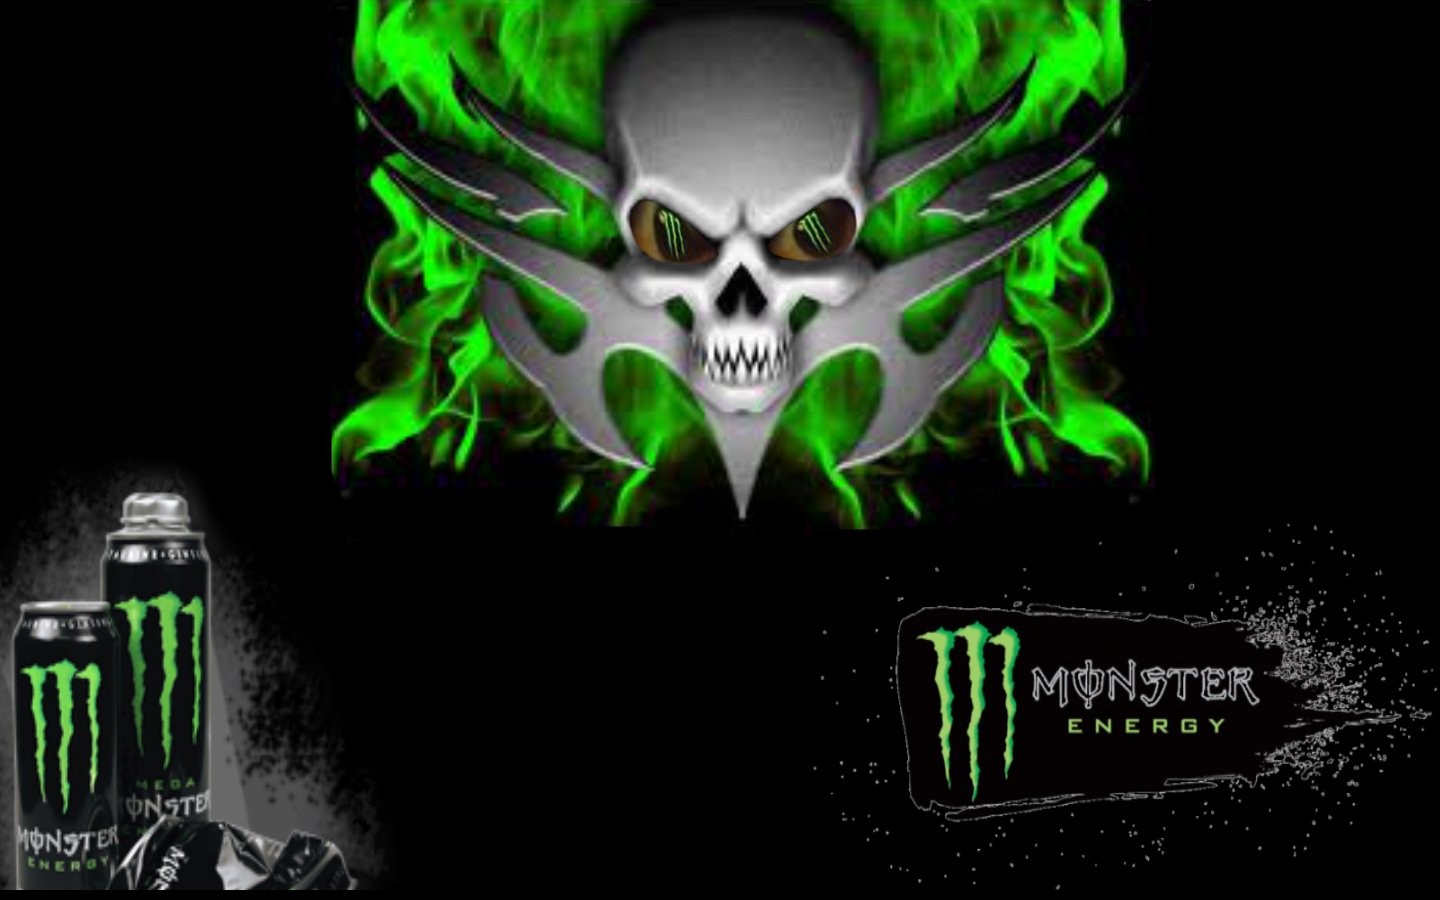 Monster Energy Wallpaper And Background Image 1440x900 Id 401451